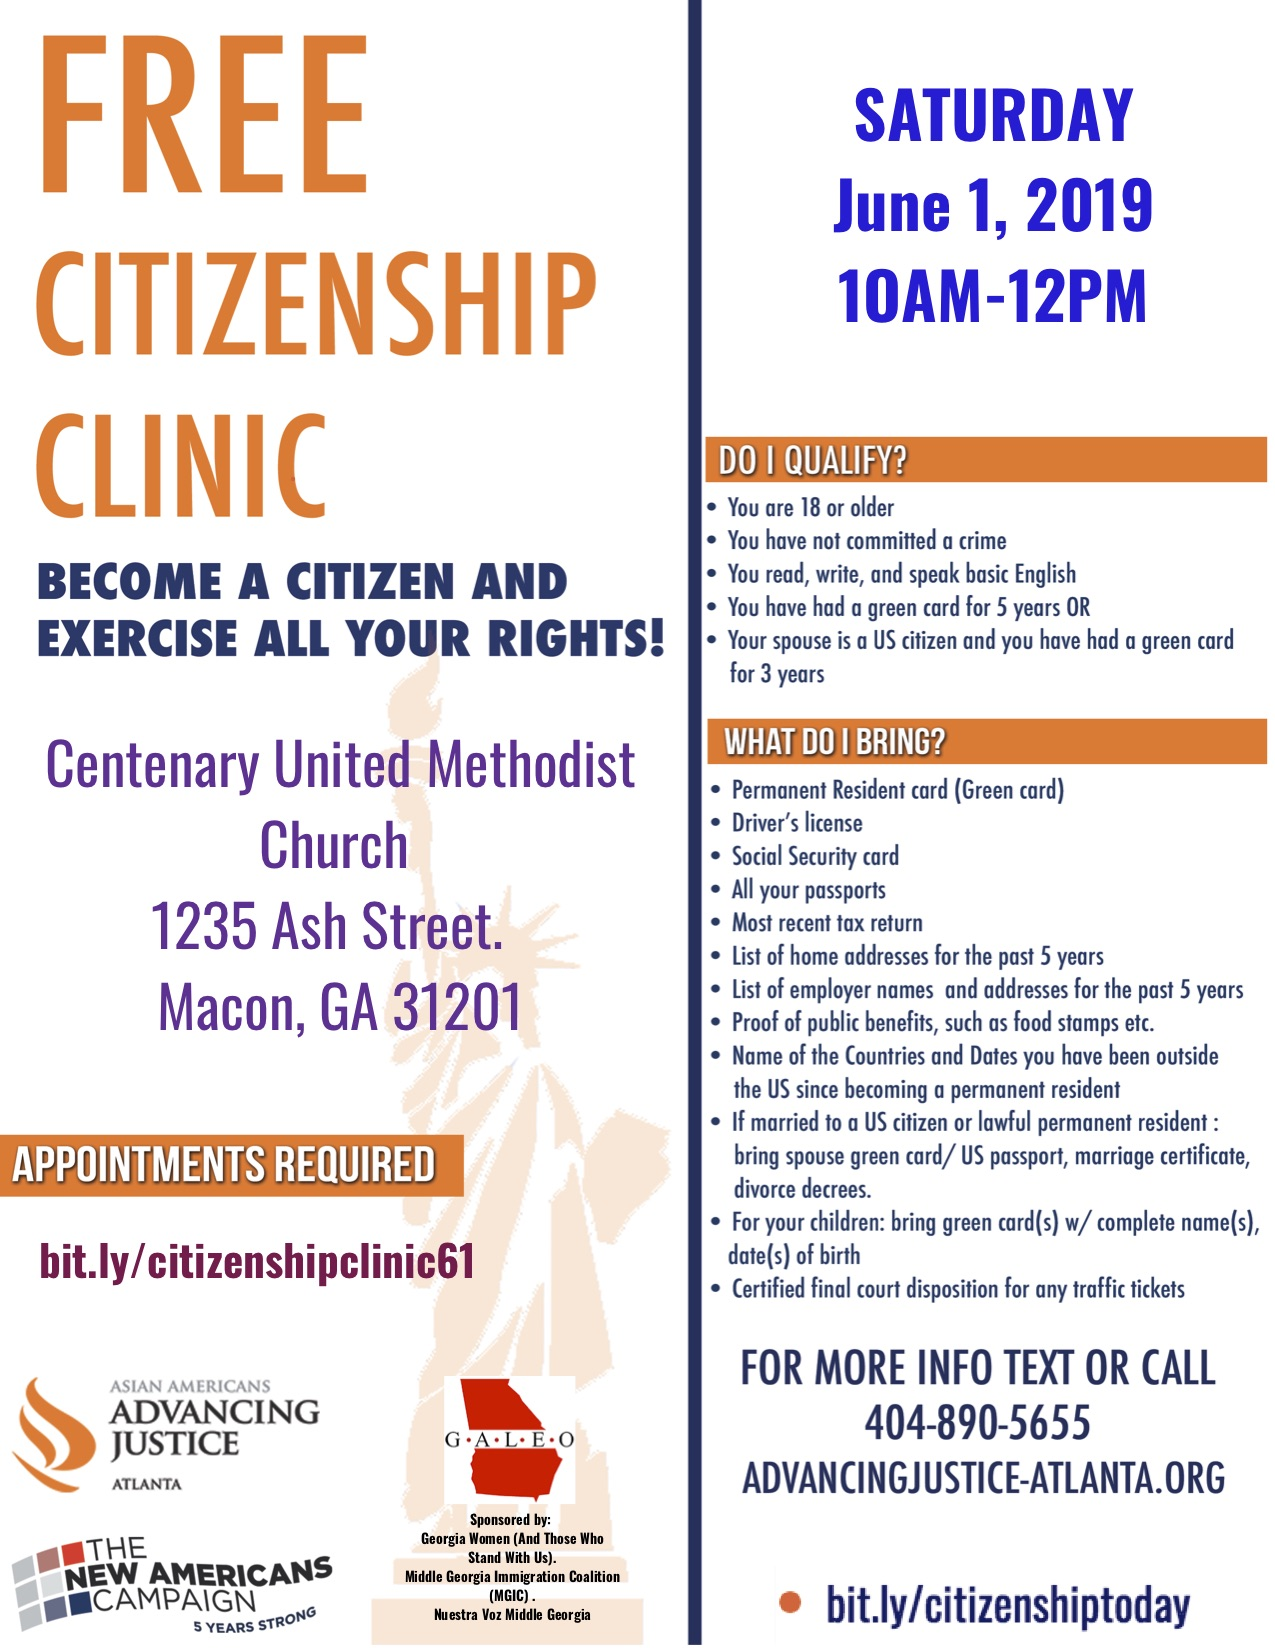 Revised_Free Citizenship Clinic 2019_english  copy.jpg